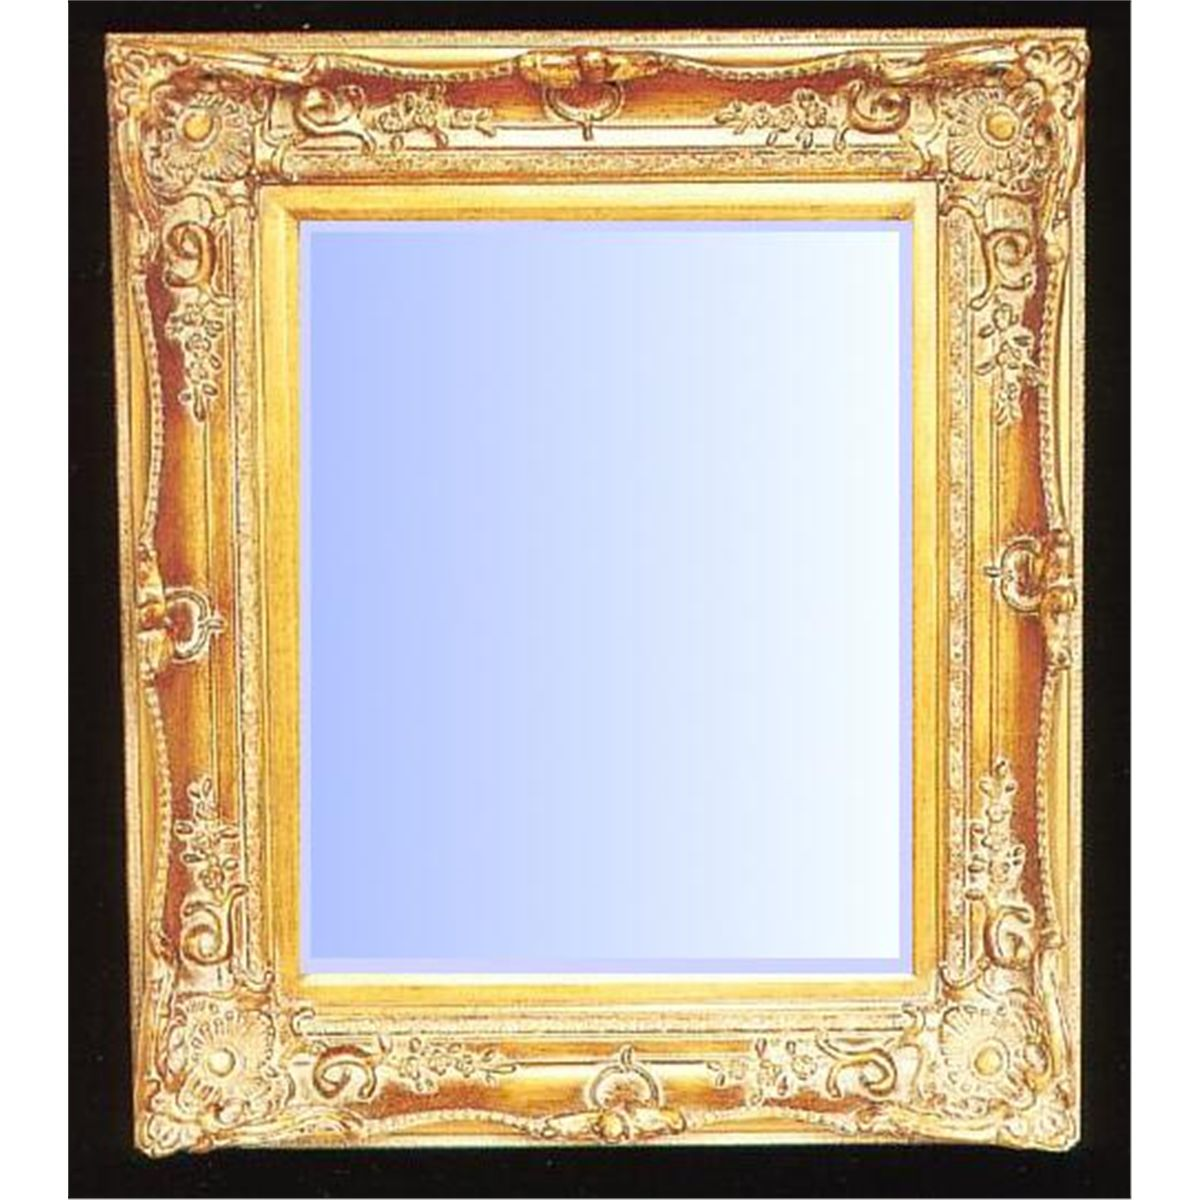 gold gilt frame ornate